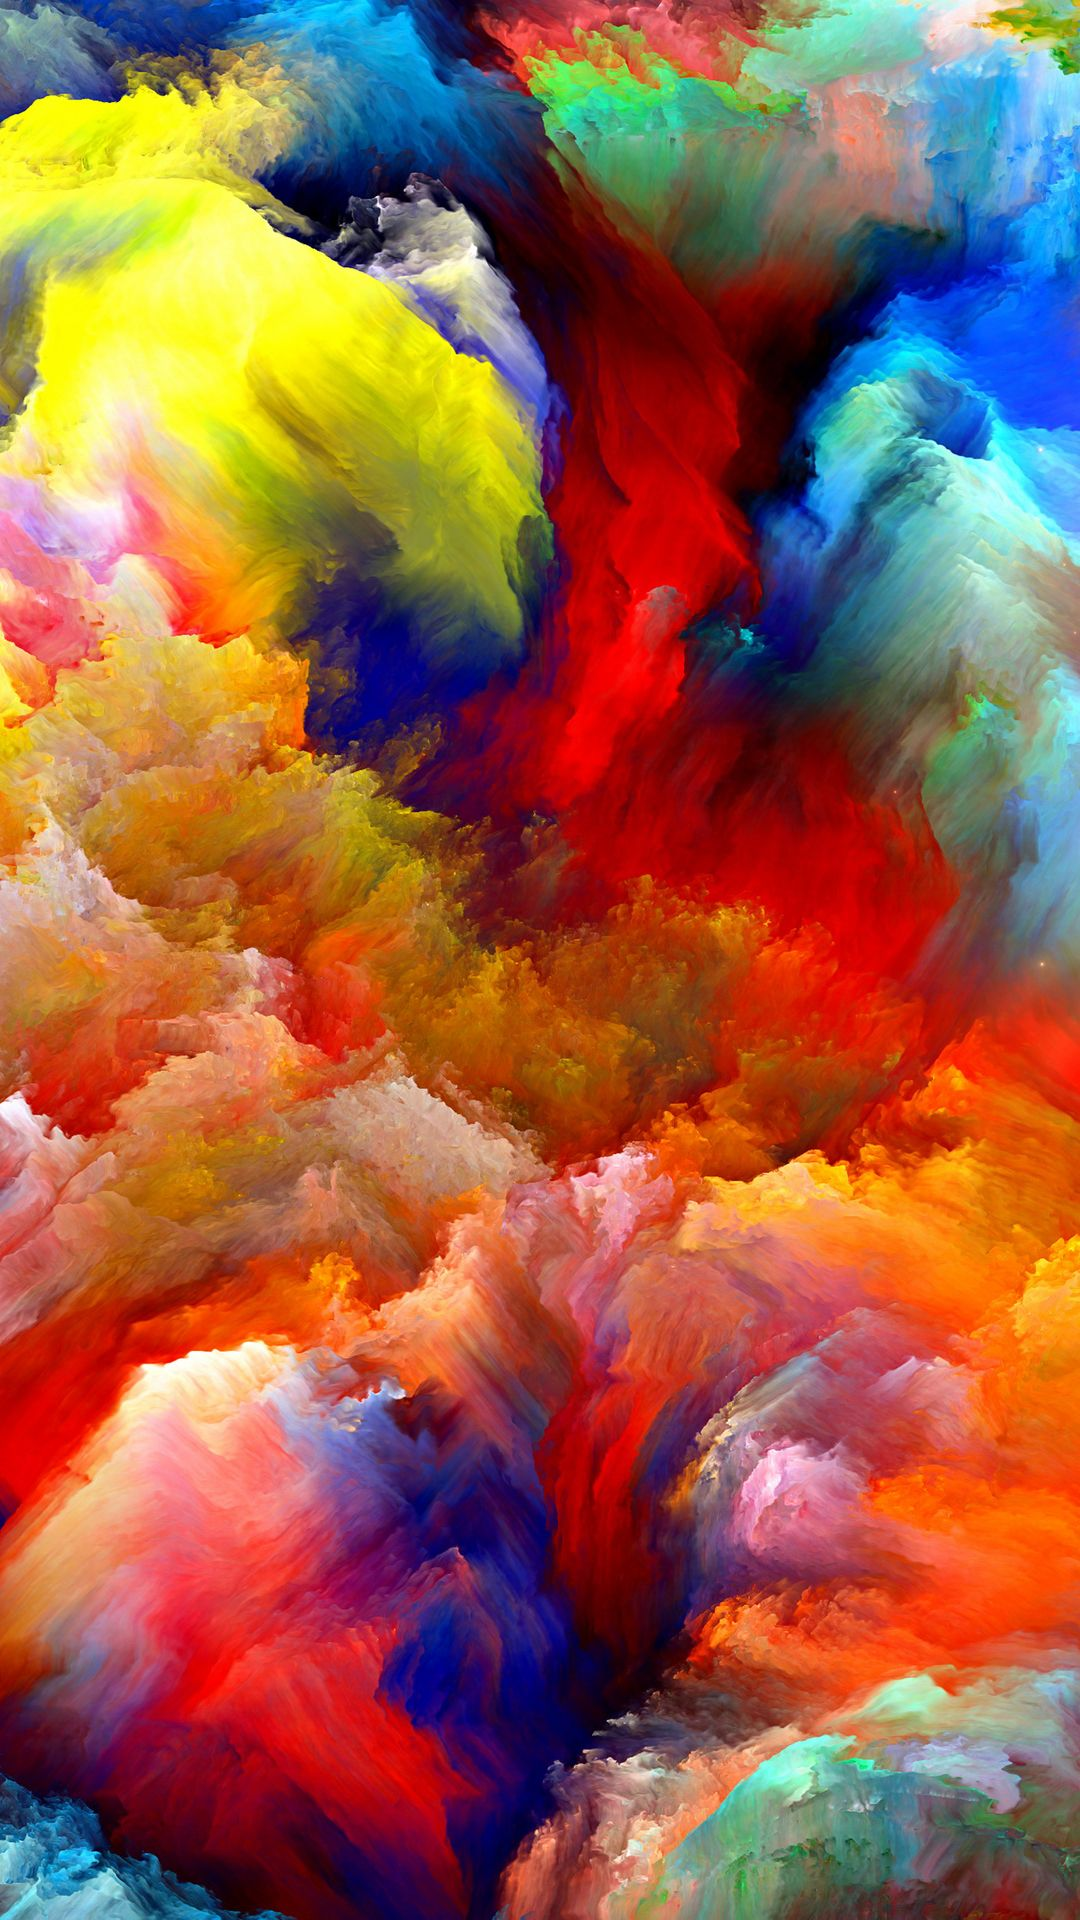 Oil Painting Colorful Strokes Iphone 6 Plus Hd Wallpaper Arte